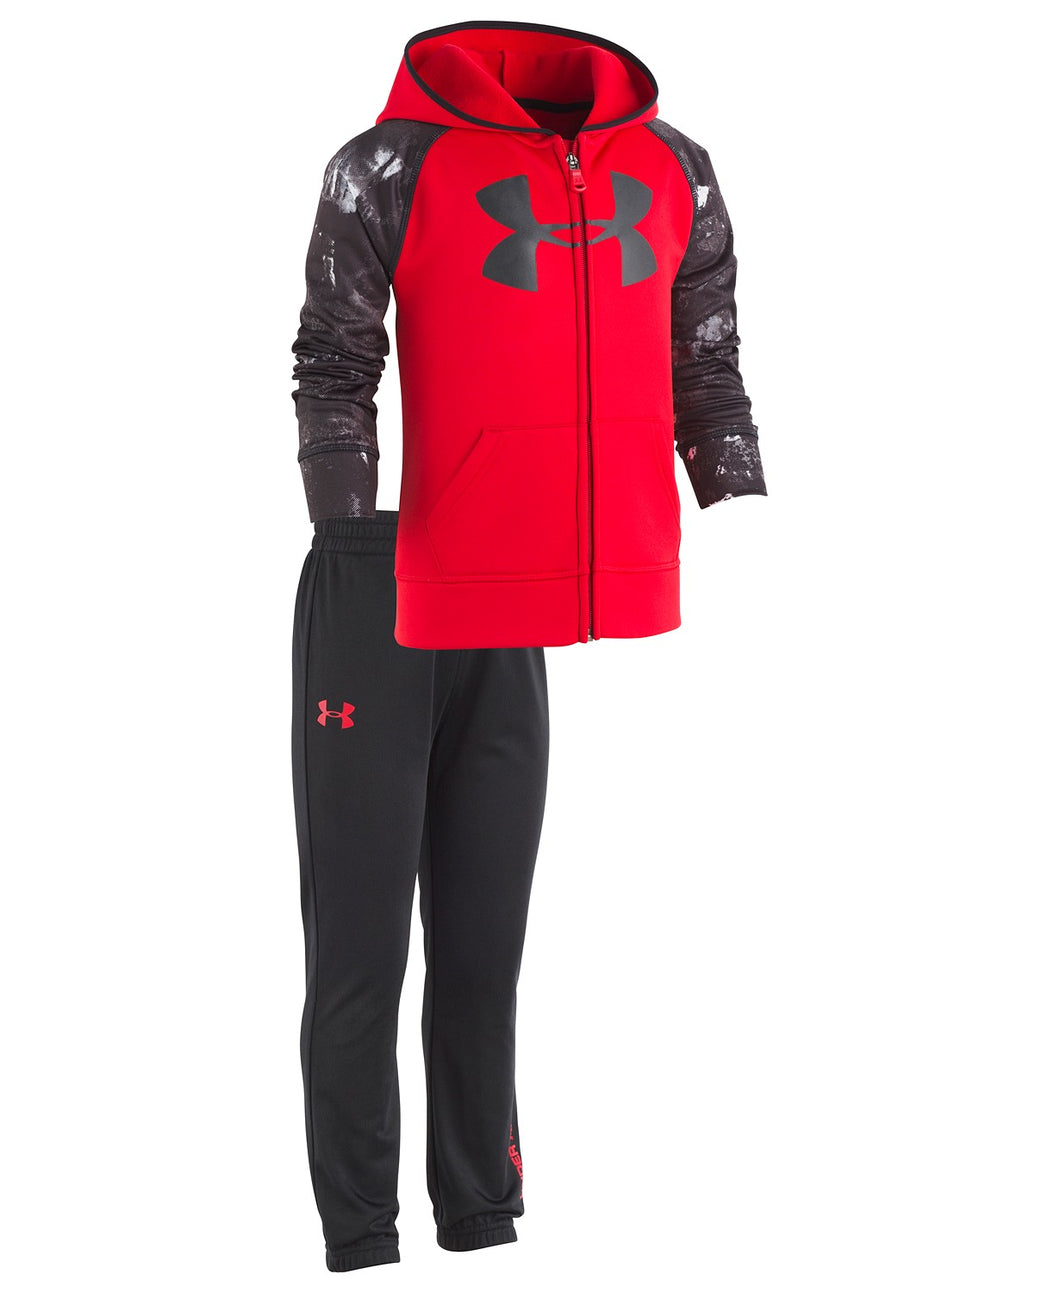 Under Armour Bedrock Camo Track Set - Red